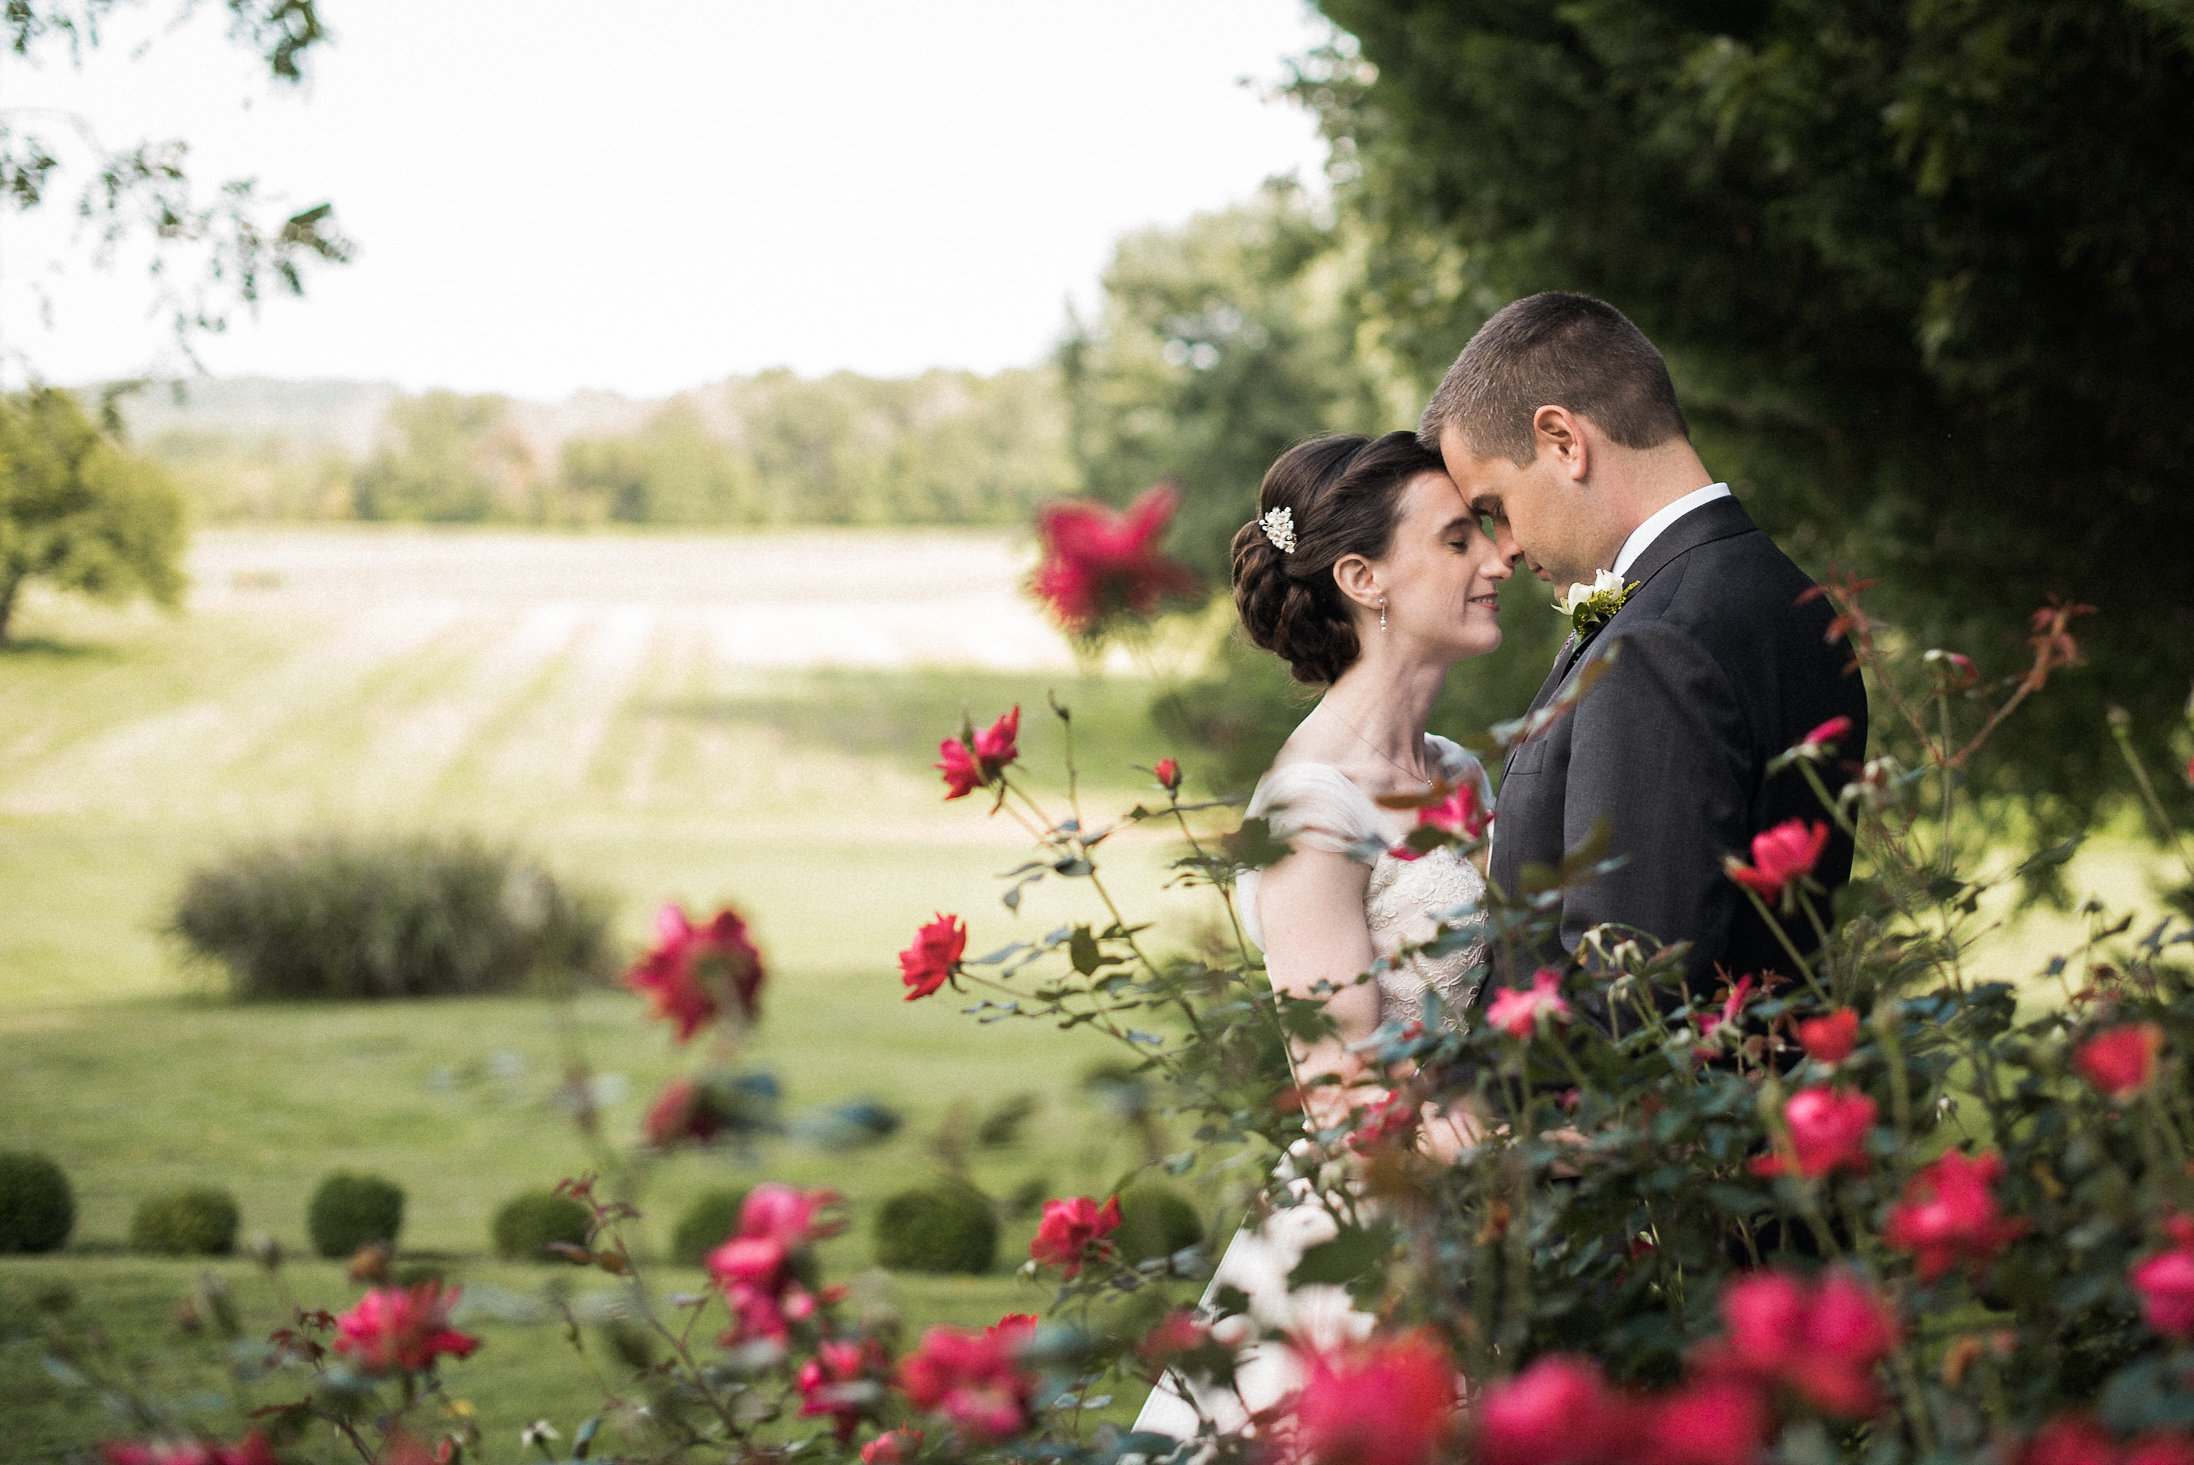 Bride and groom embracing behind rose bush